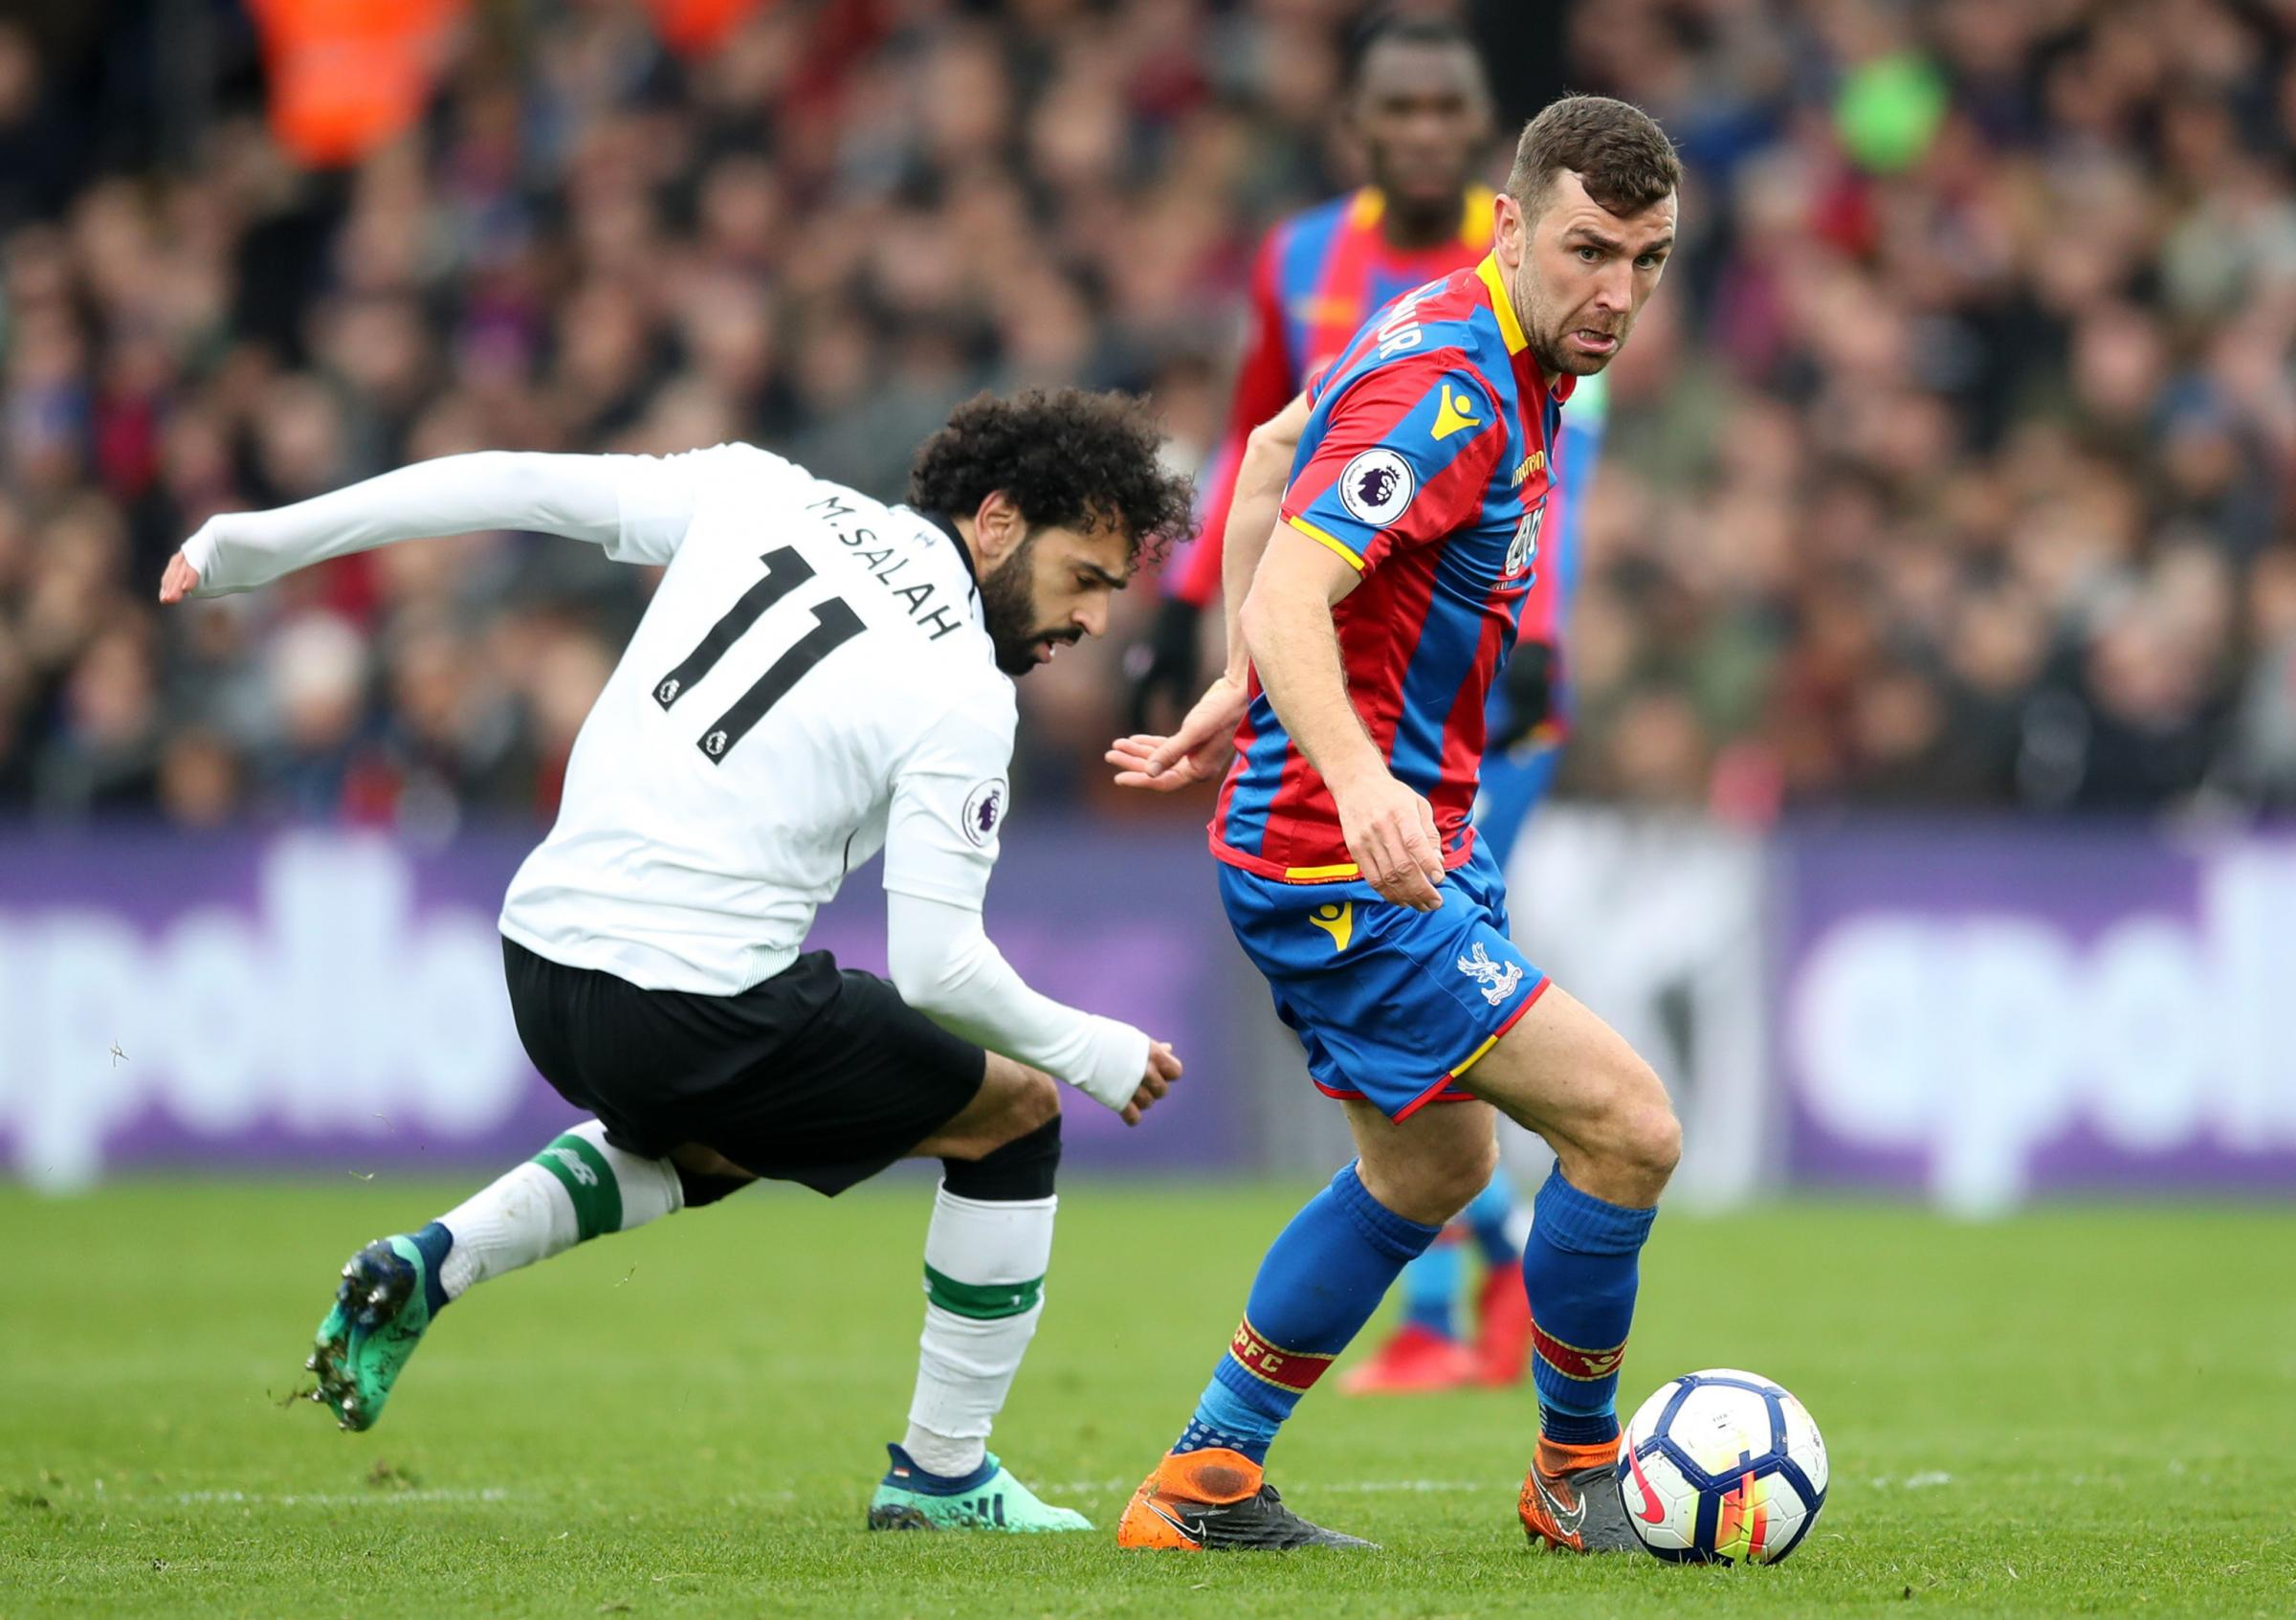 Crystal Palace's James McArthur. Photo: Adam Davy/PA Wire